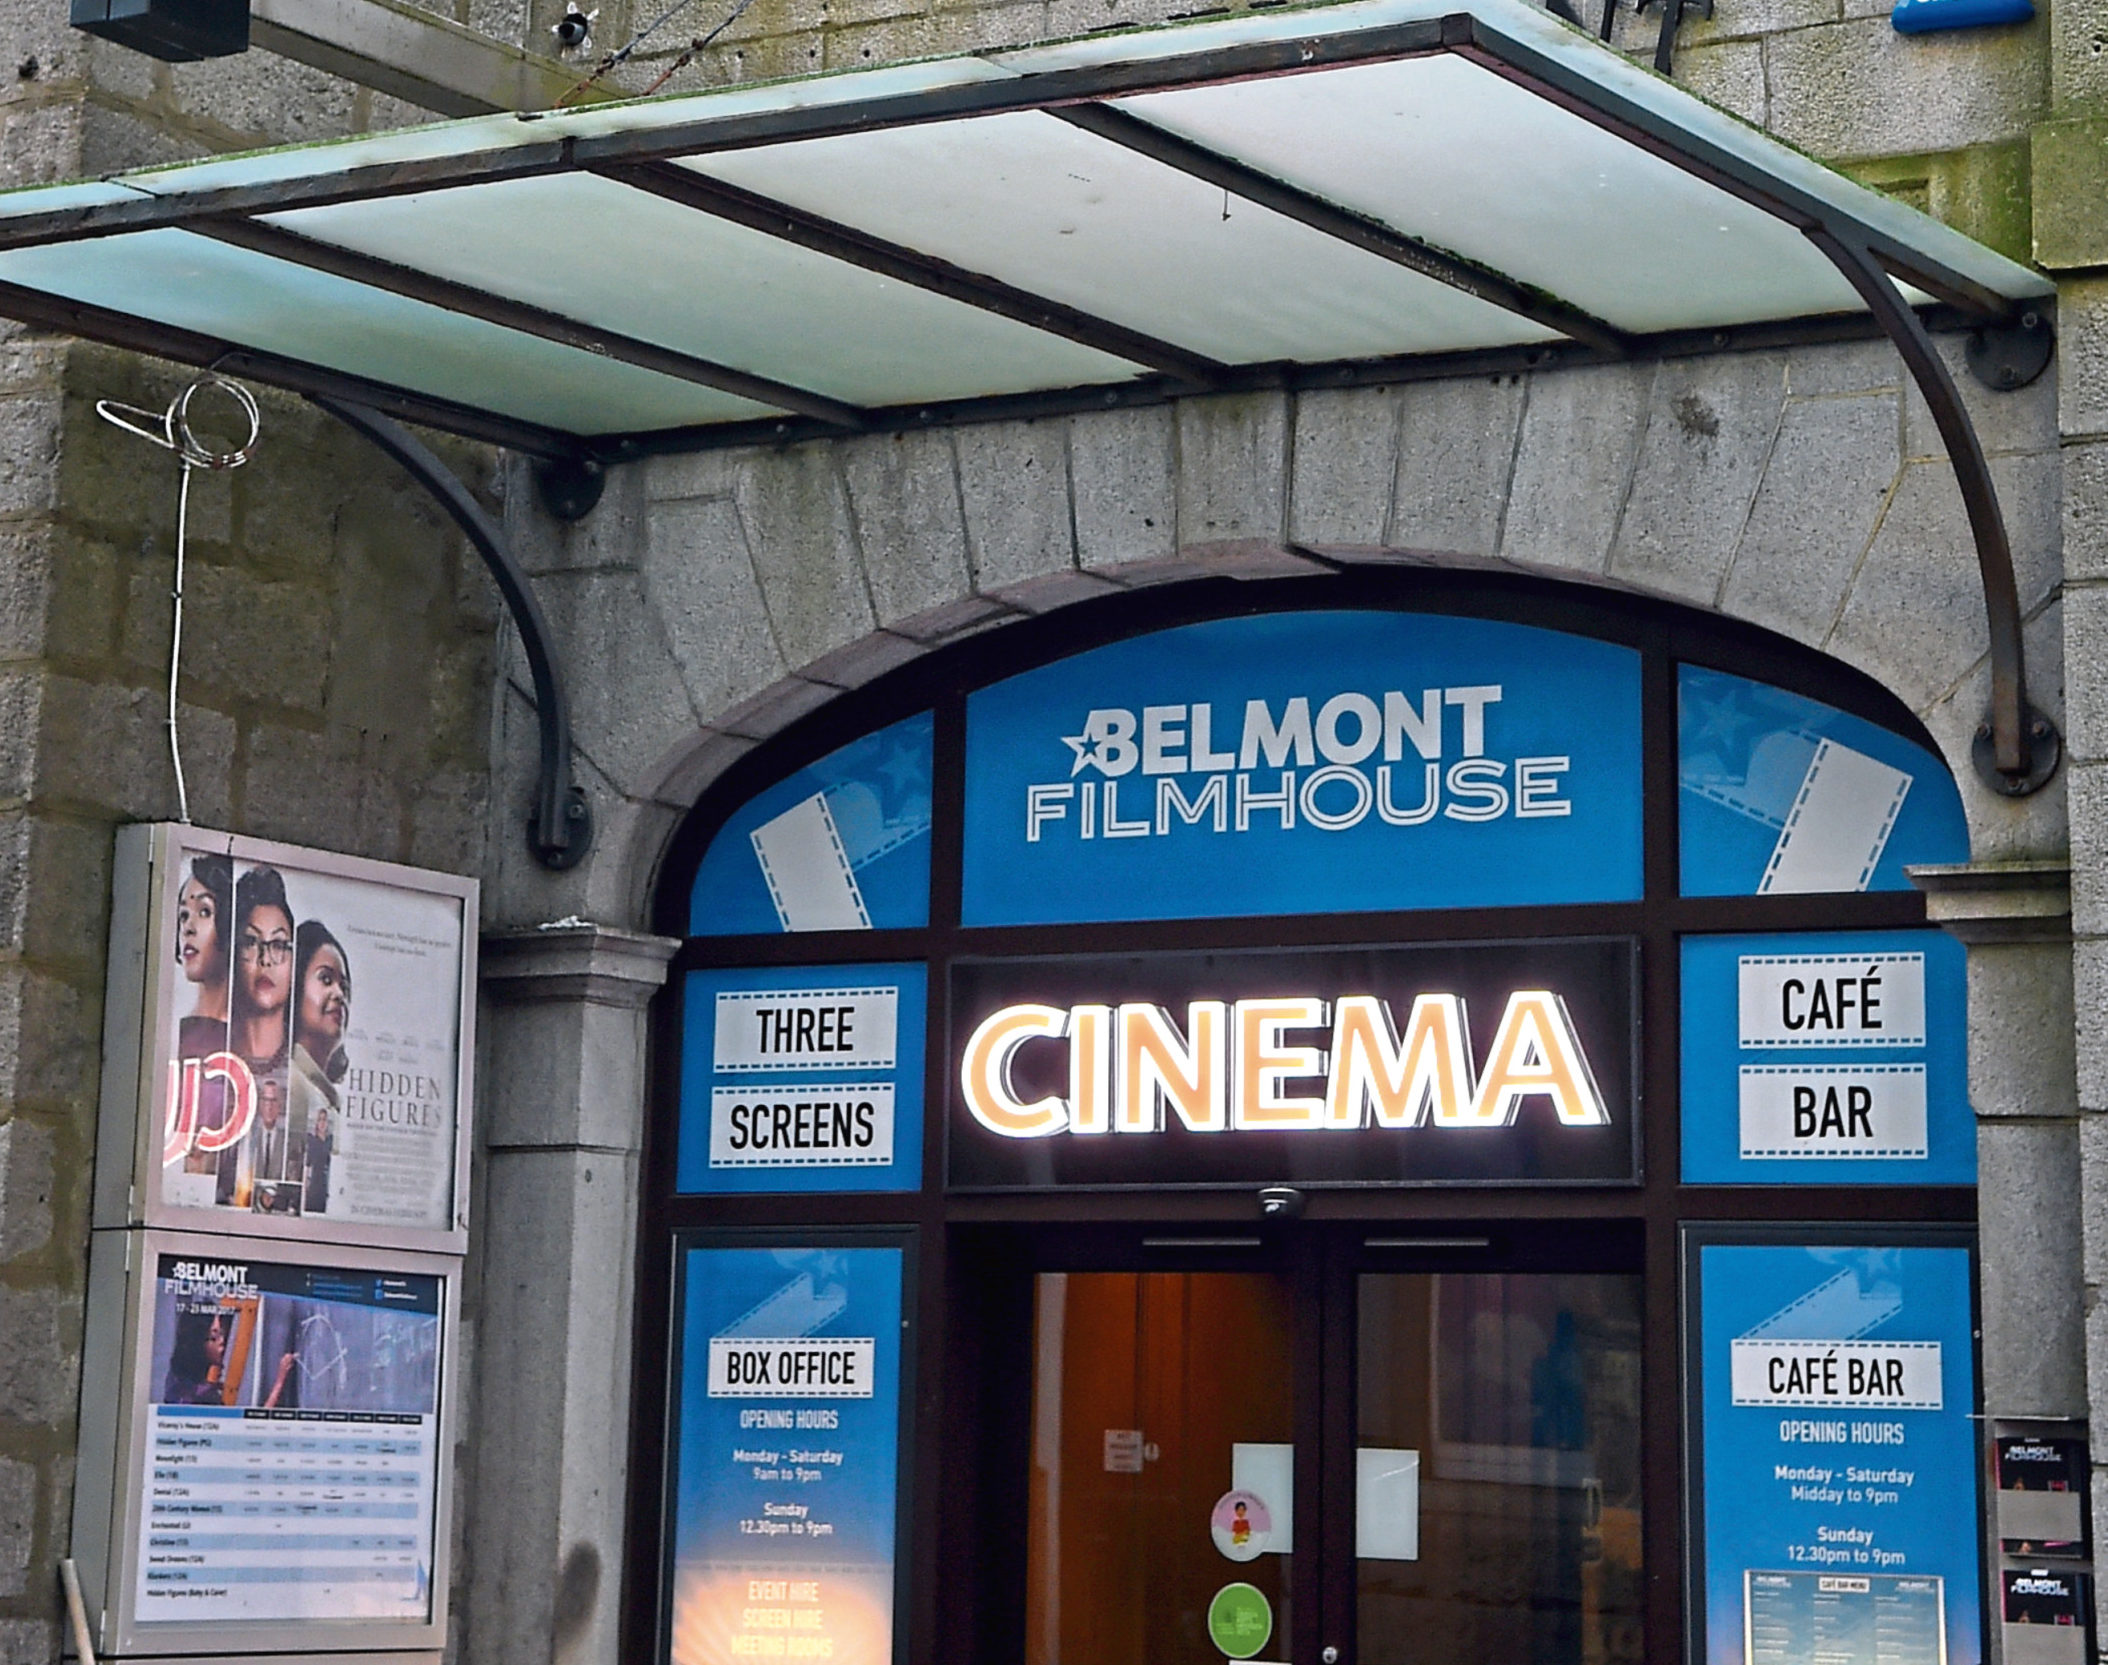 Belmont FIlmhouse has reached more than 25% of its fundraising target after one day